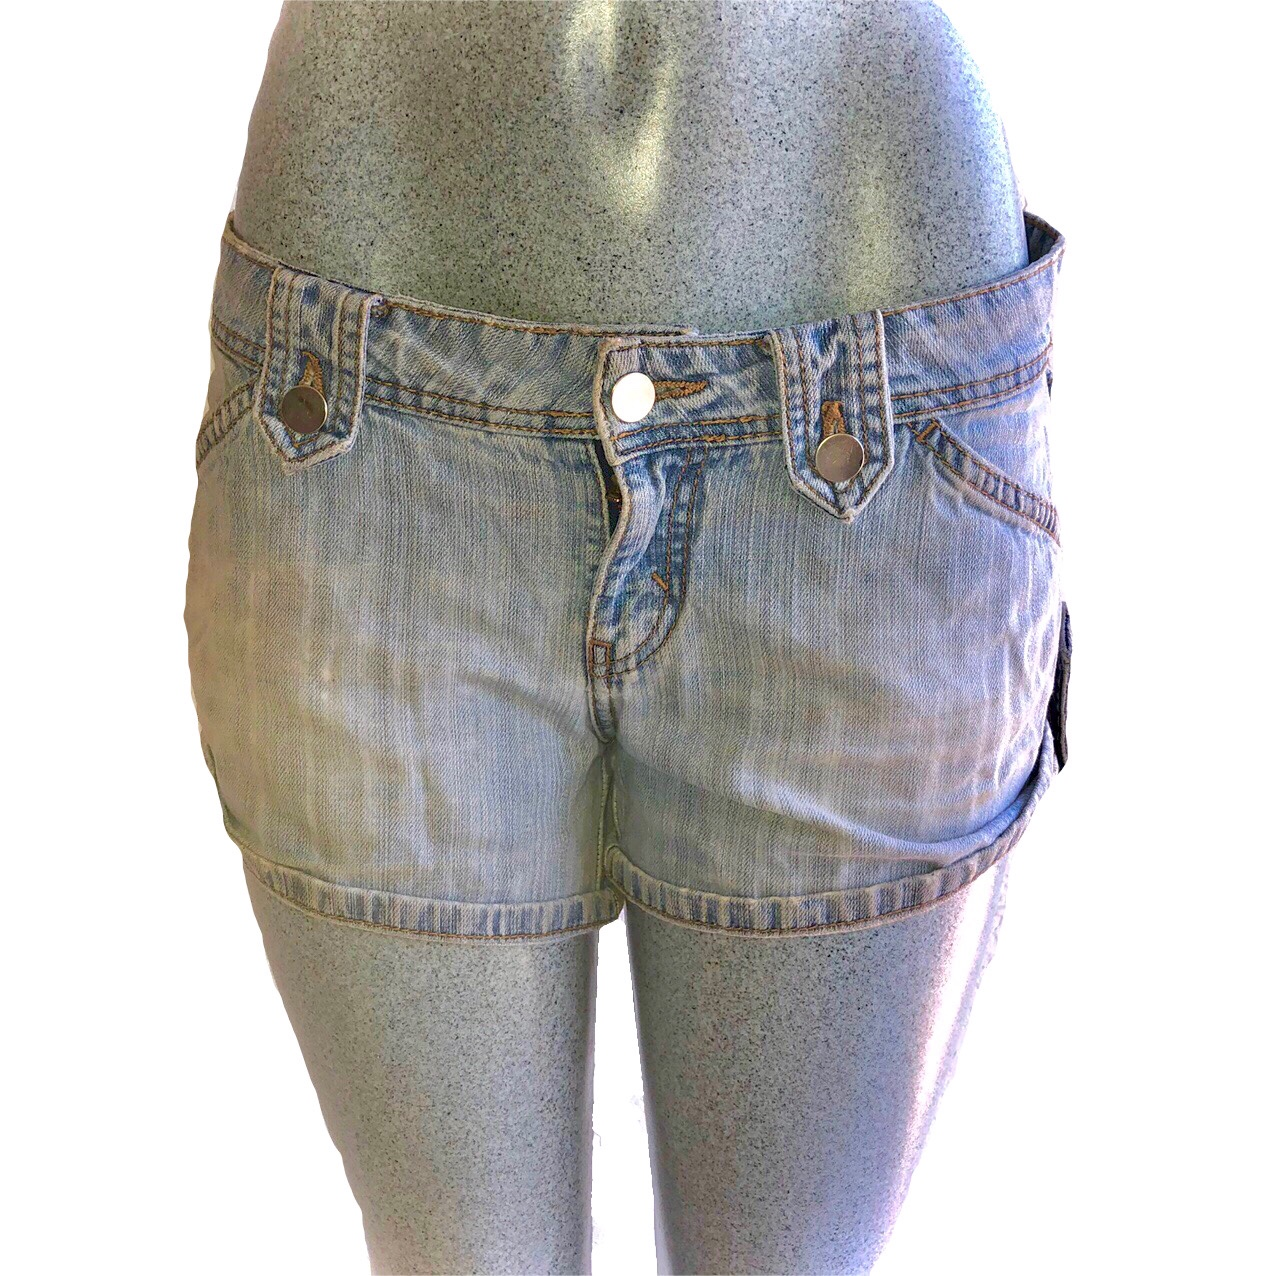 Product Image 1 - 💙Adorable Blue Jean Shorts with